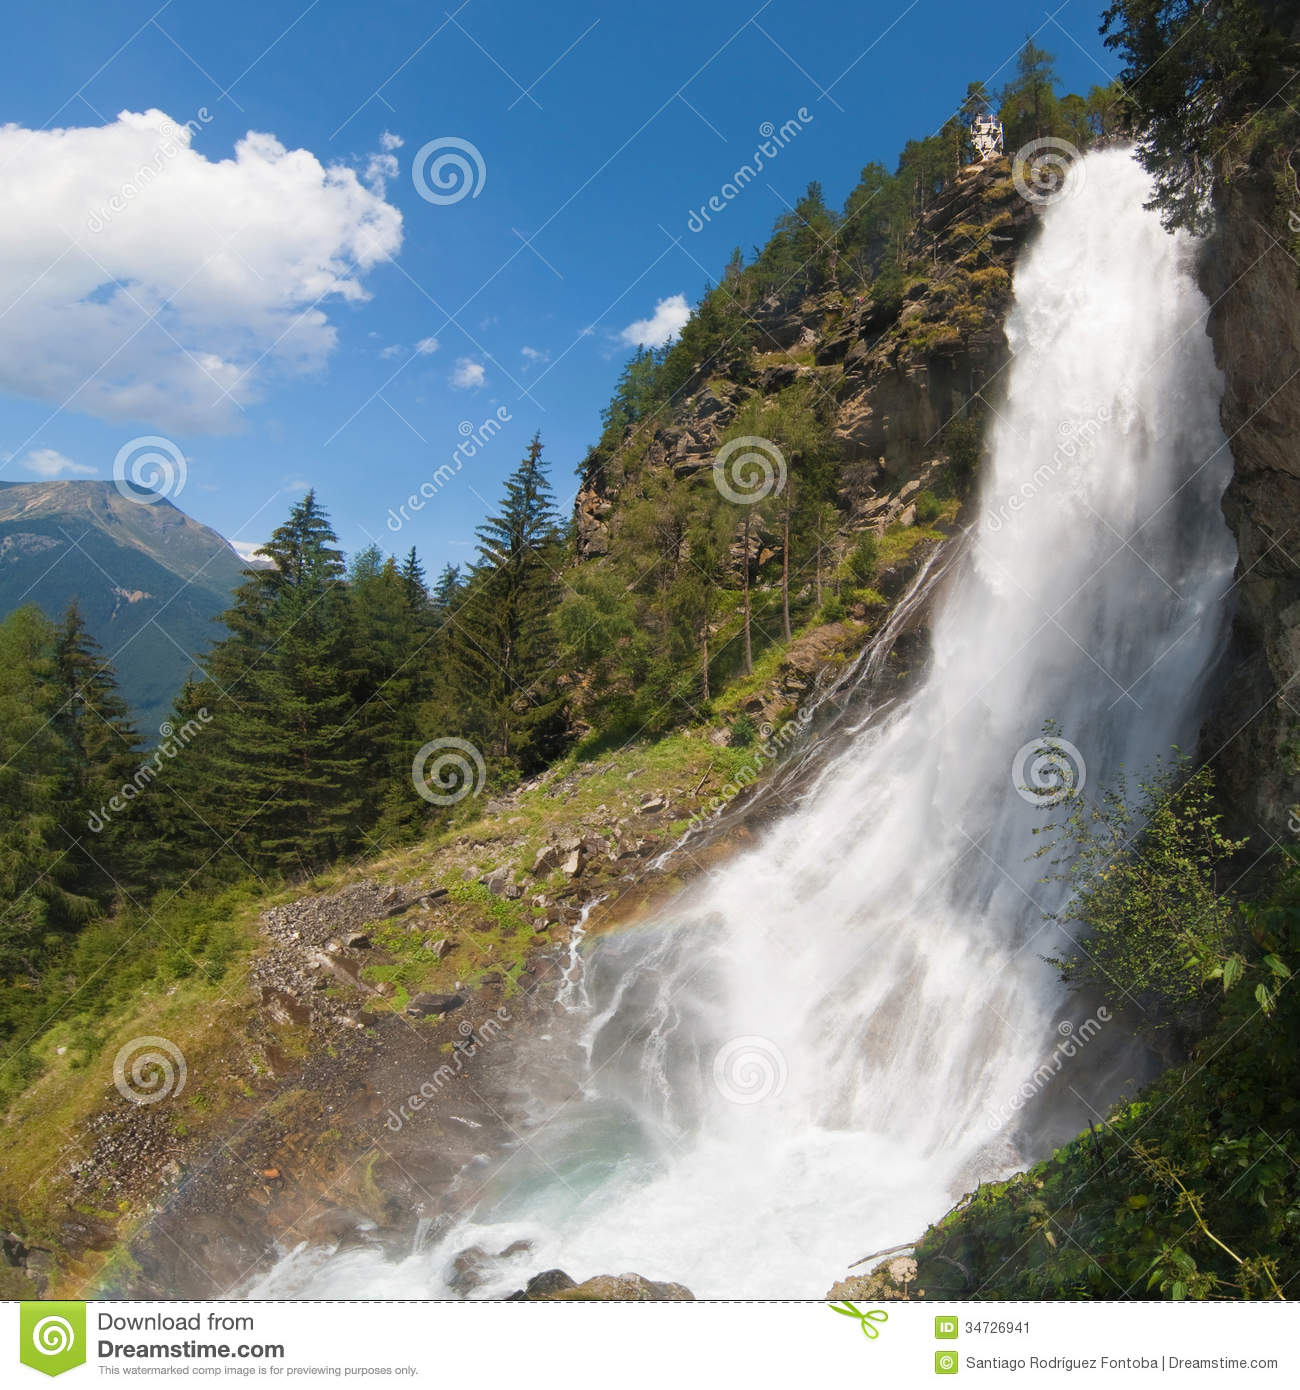 Stuibenfall Waterfall Stock Image.